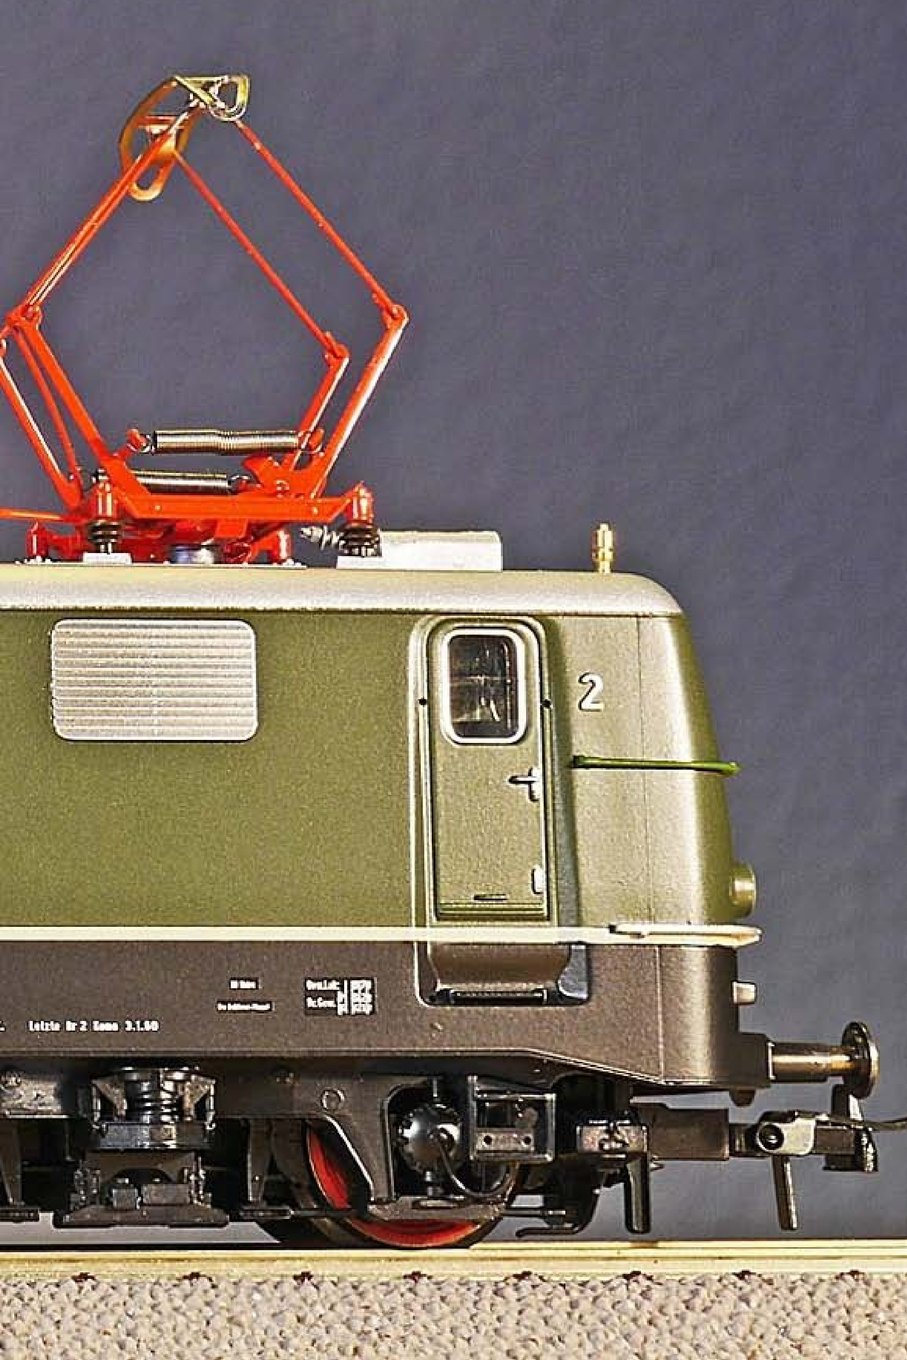 Scale HO Electric Locomotive Model Train: Notebook, 150 lined pages, softcover, 6 x 9